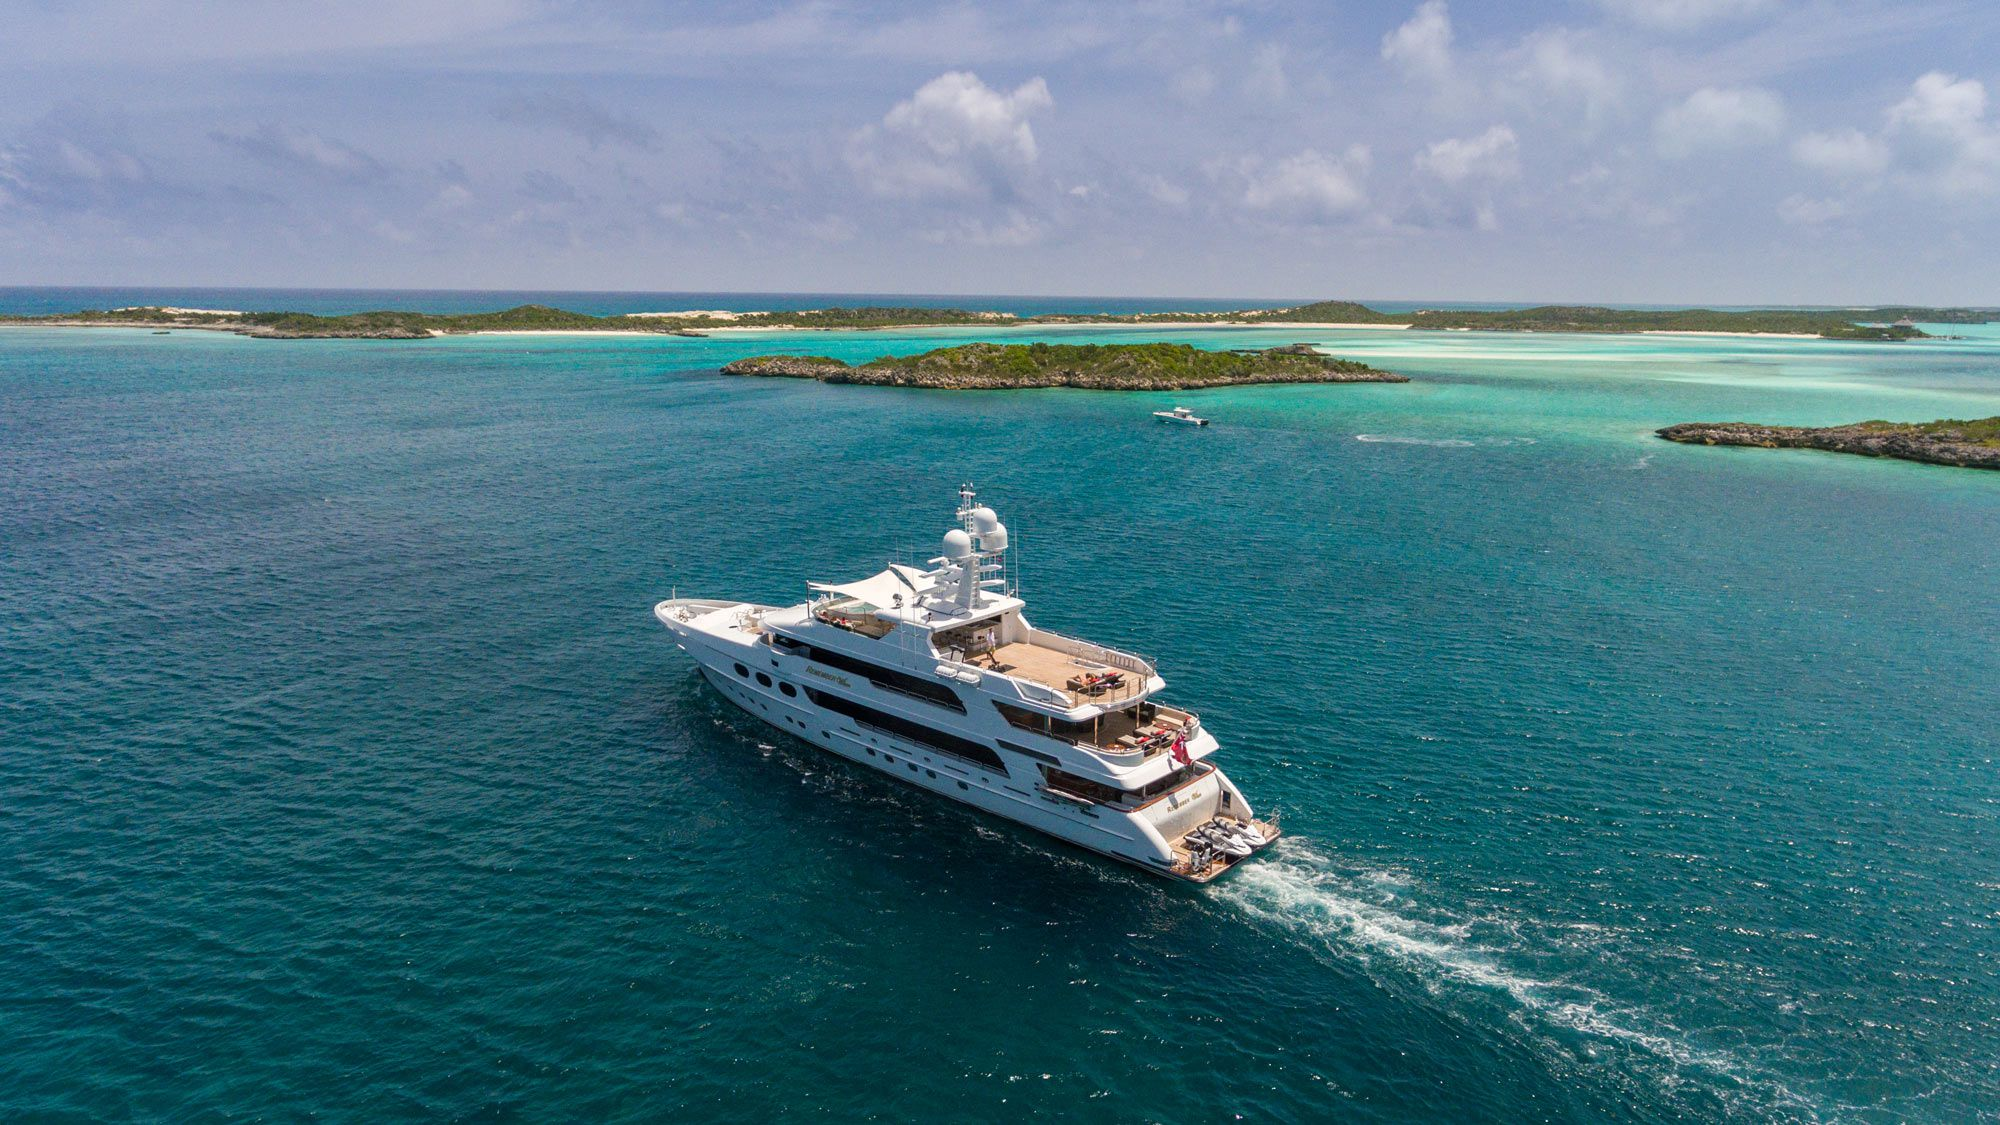 The 162-foot Christensen <em>Remember When</em> will offer summer 2020 charters in the Bahamas.